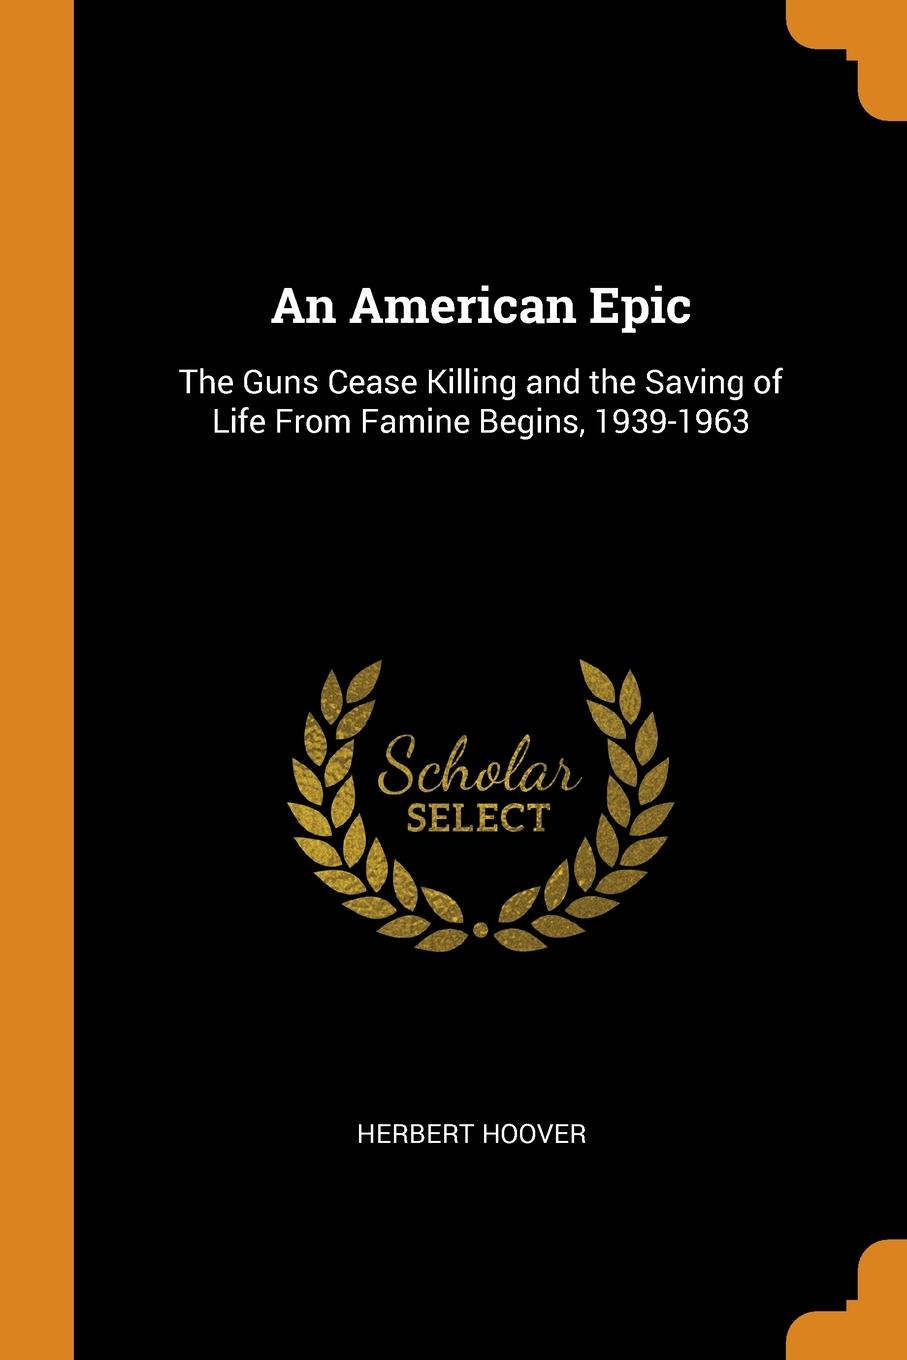 An American Epic. The Guns Cease Killing and the Saving of Life From Famine Begins, 1939-1963